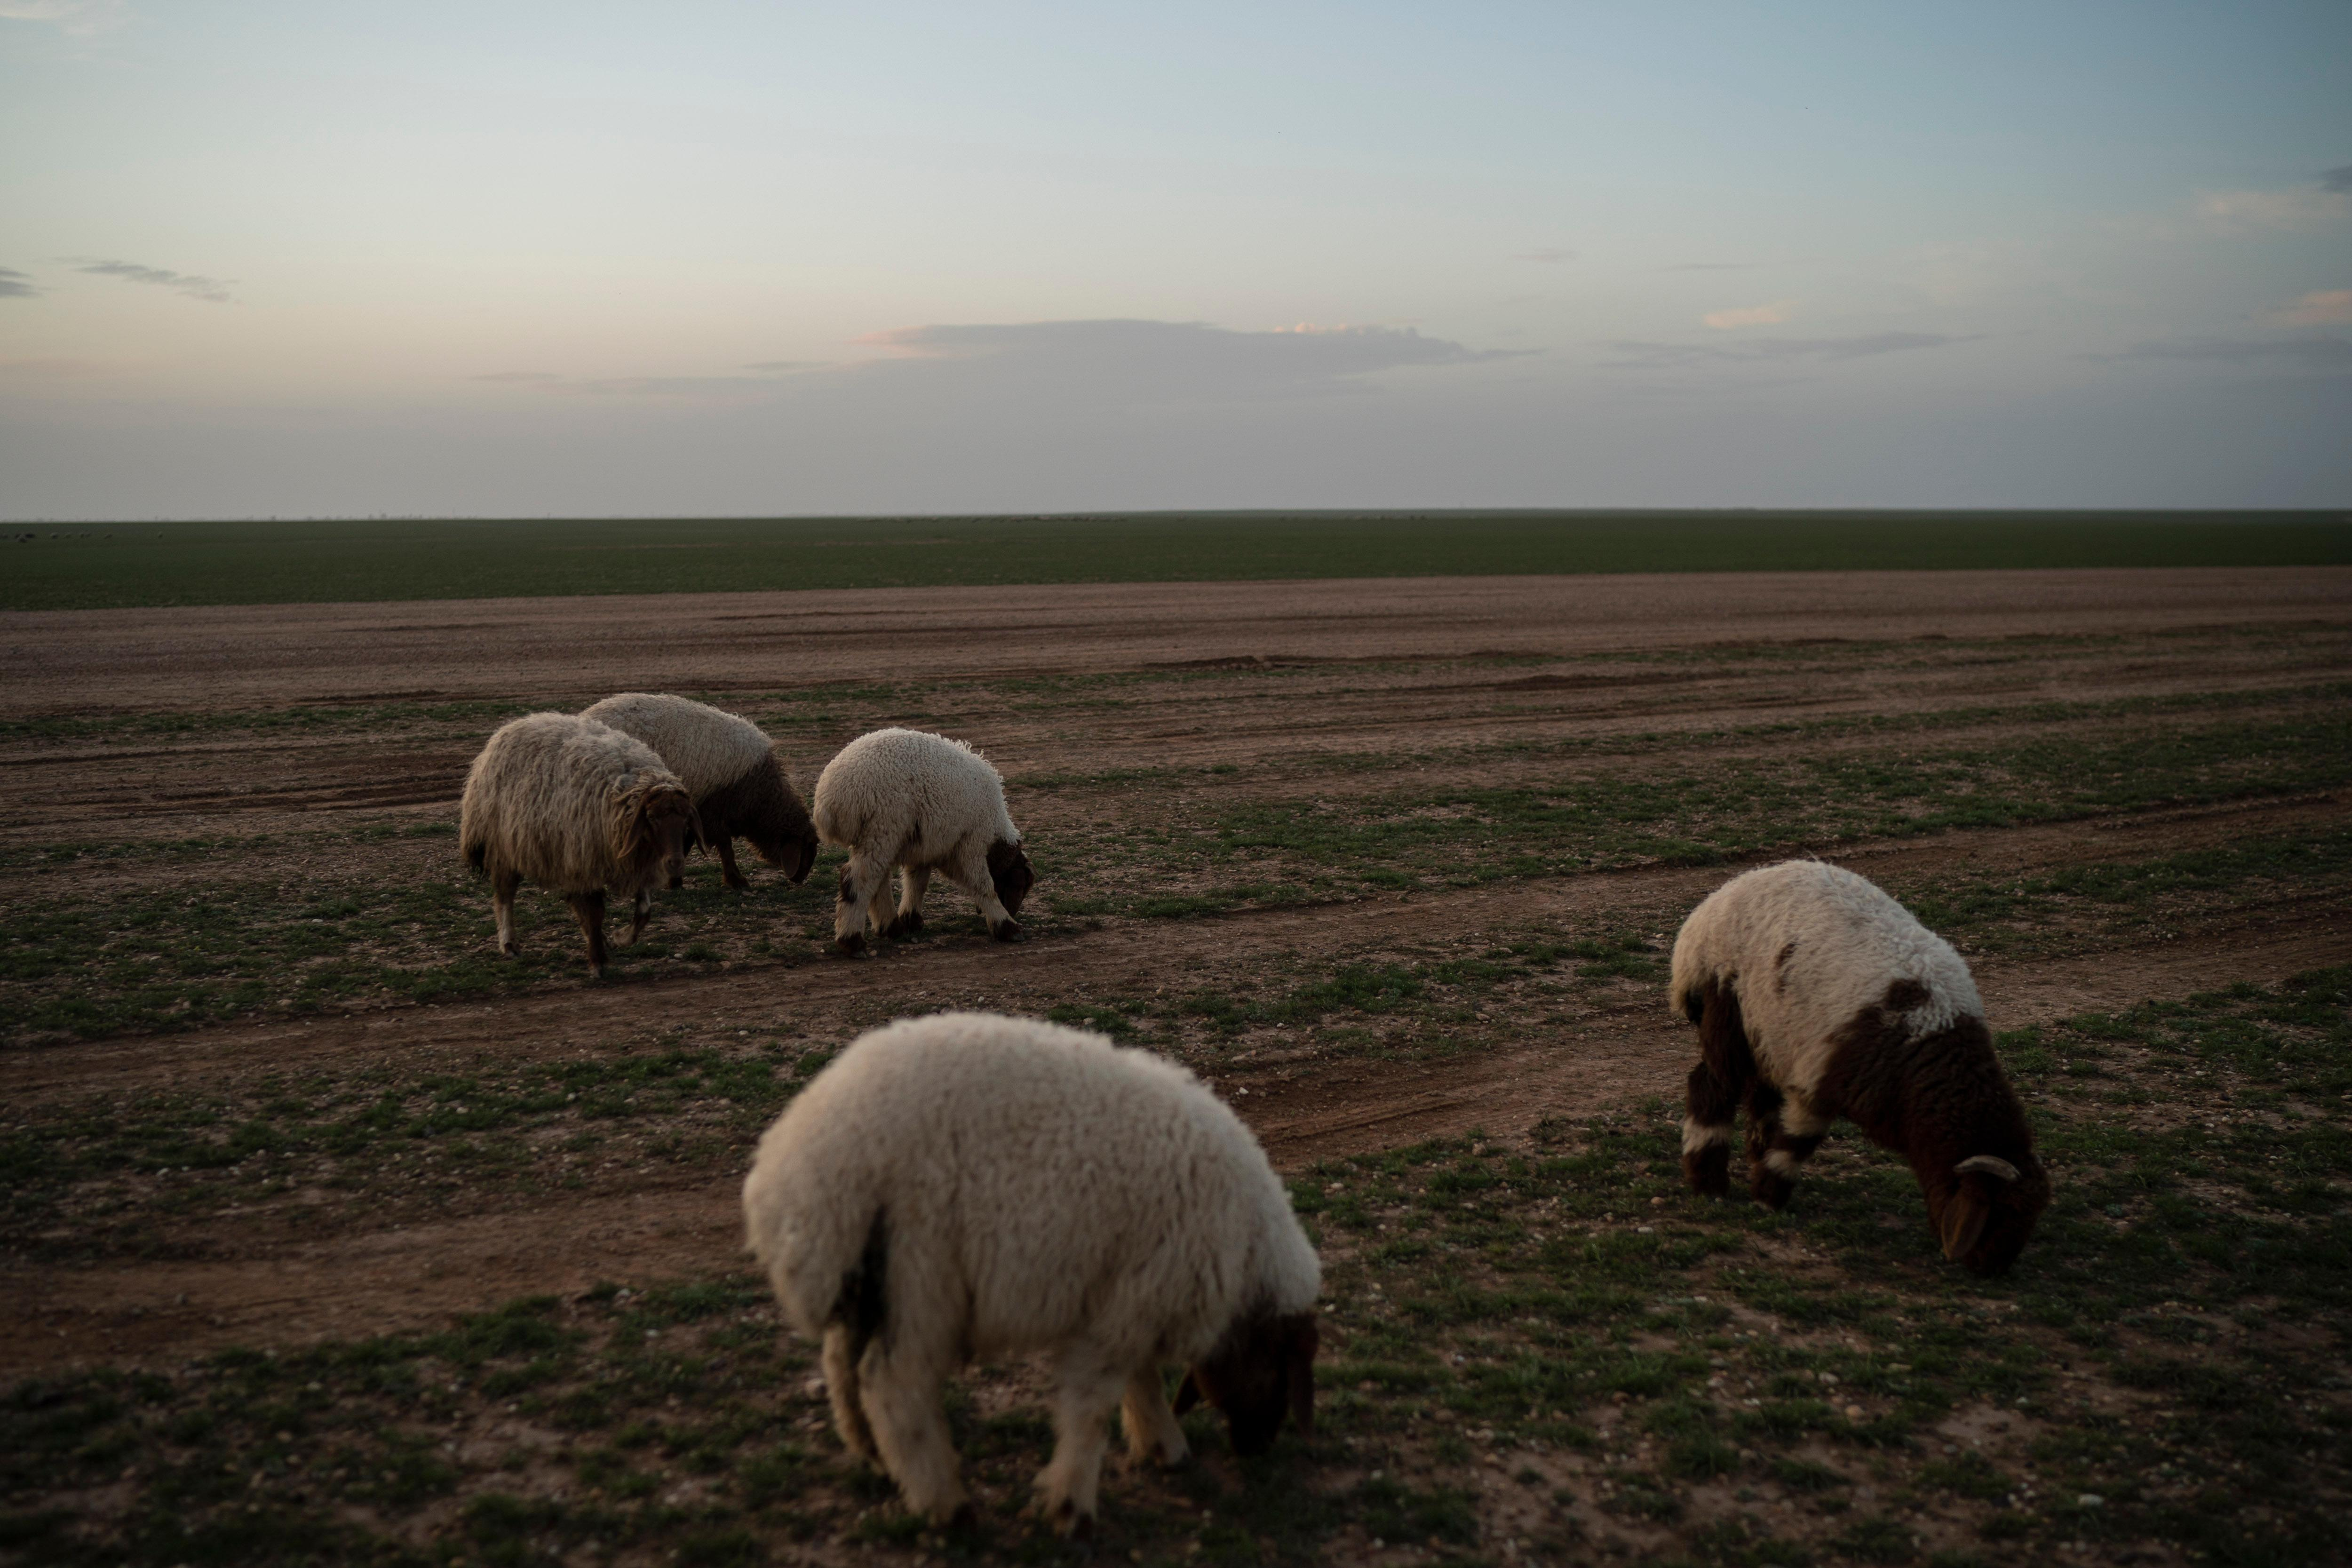 Sheep eat grass in the desert near Hajin, Syria, Saturday, Feb. 16, 2019. (AP Photo/Felipe Dana)